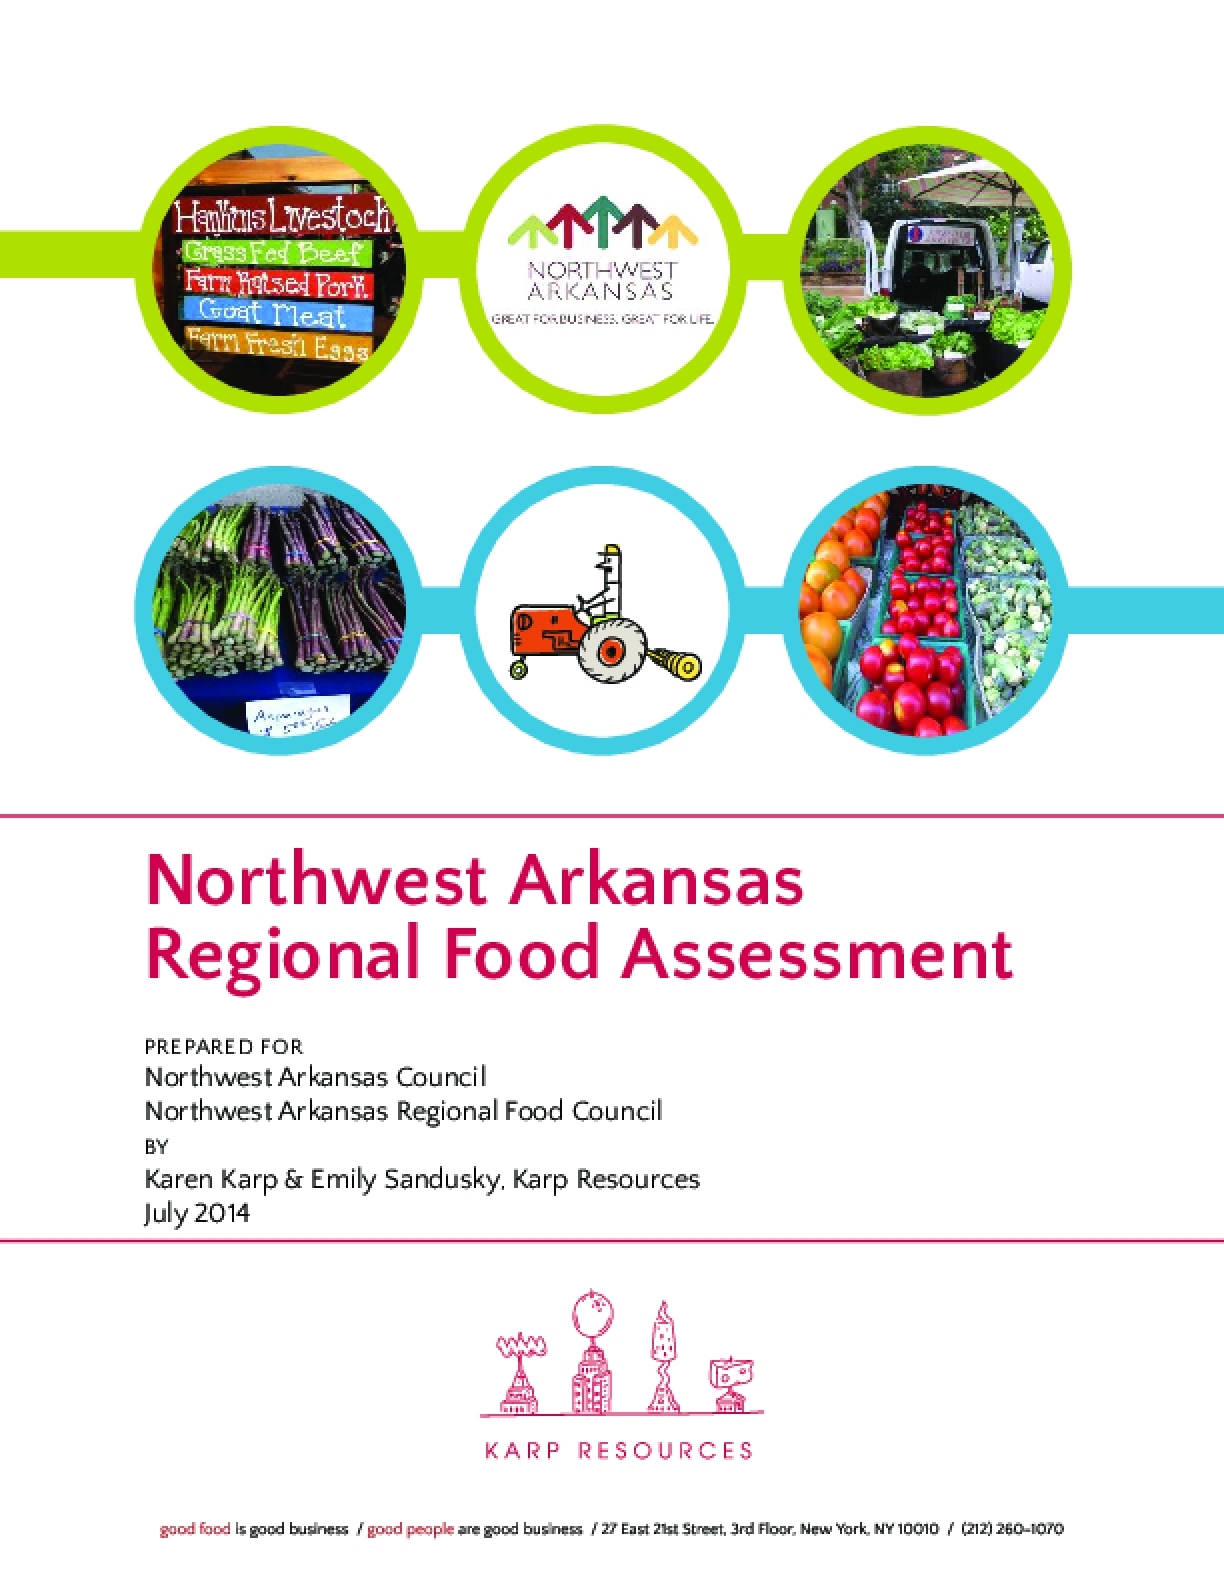 Northwest Arkansas Regional Food Assessment